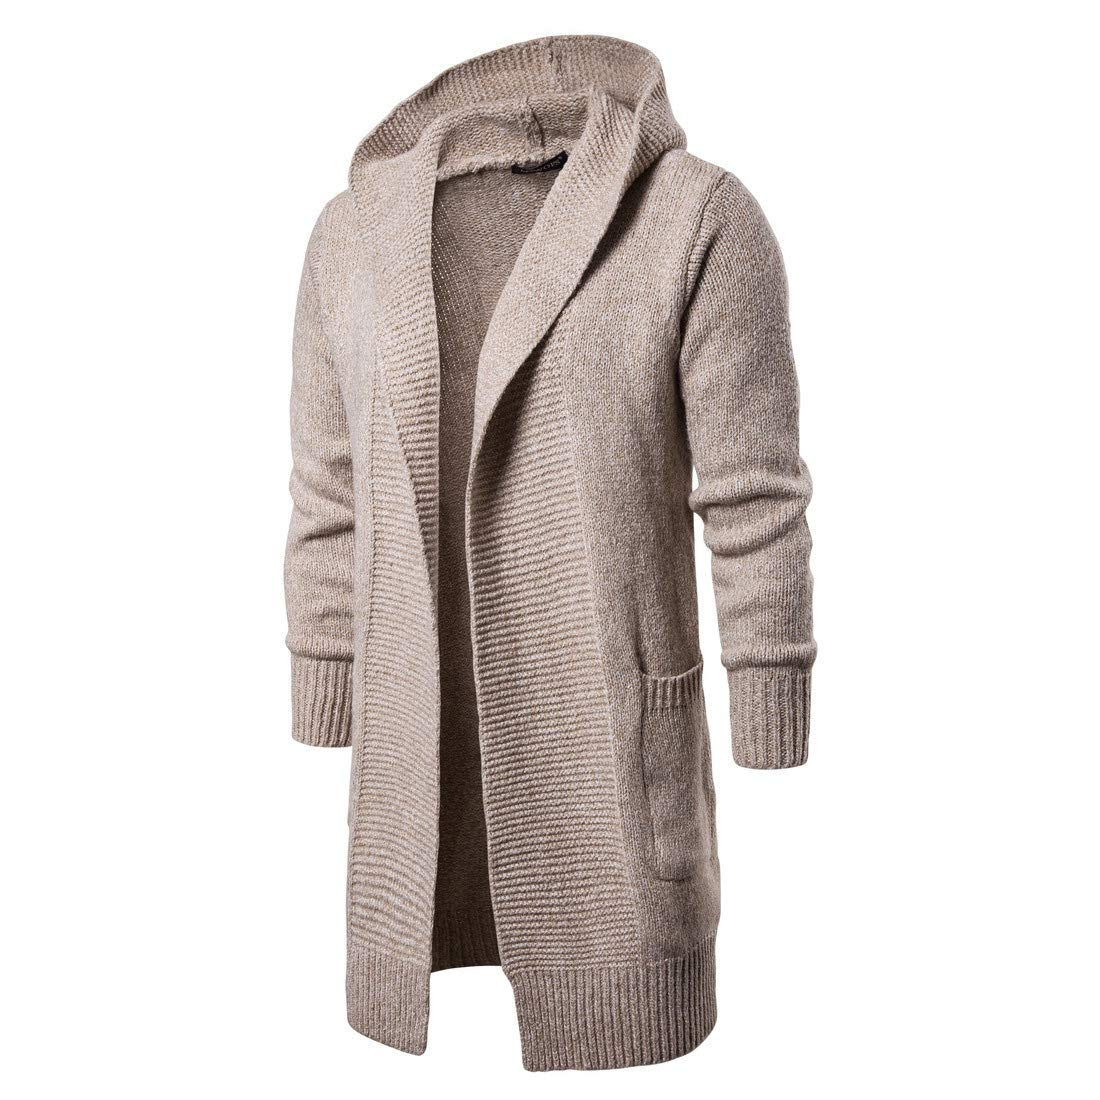 1ba4fb69d2 MAGE MALE Men's Long Cardigan Sweater Hooded Knit Slim Fit Open Front  Longline Cardigans with Pockets (Khaki, S): Amazon.co.uk: Clothing